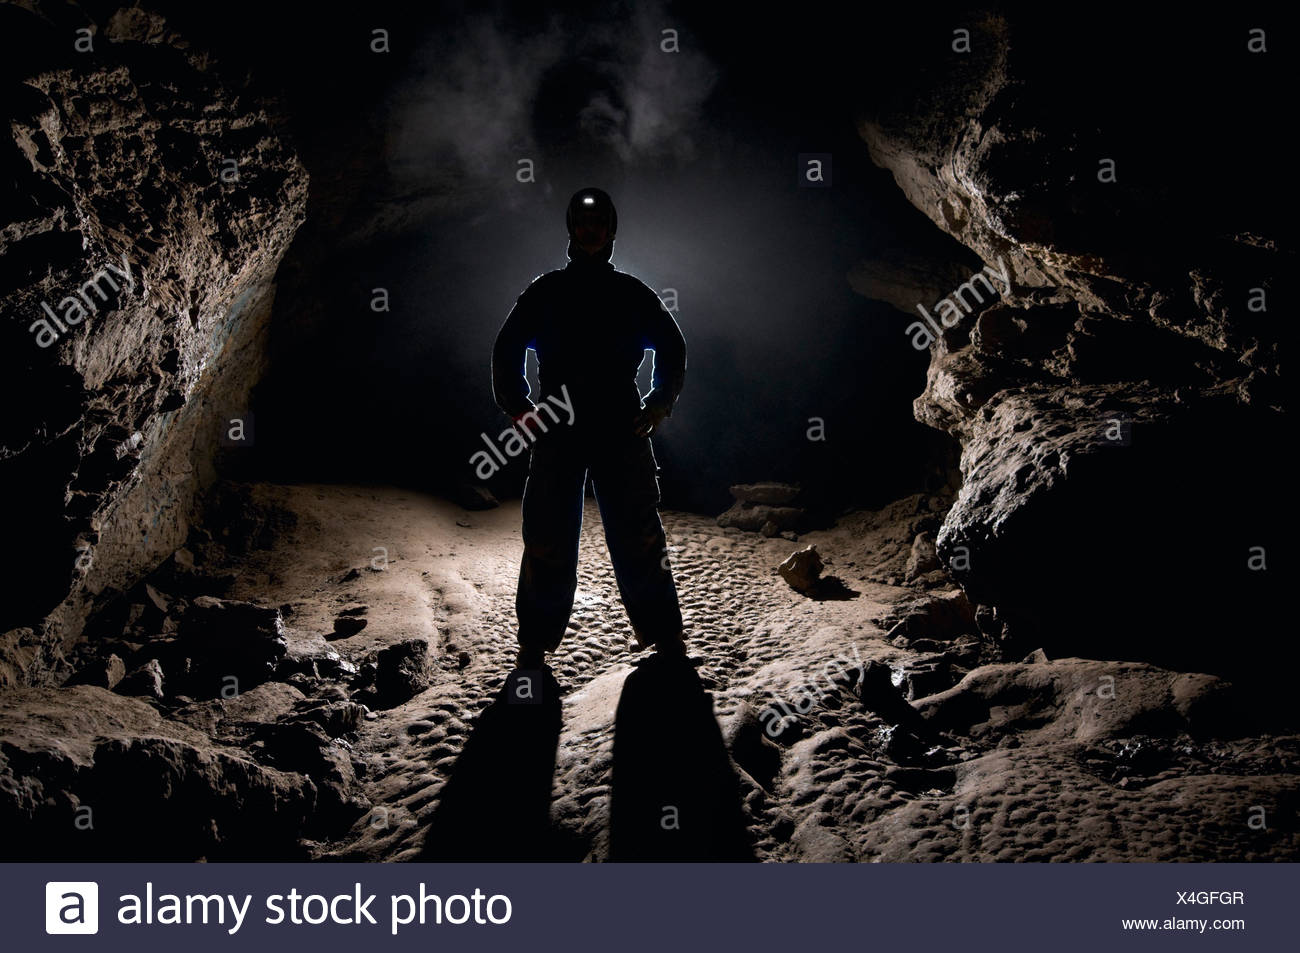 Man in a cave - Stock Image